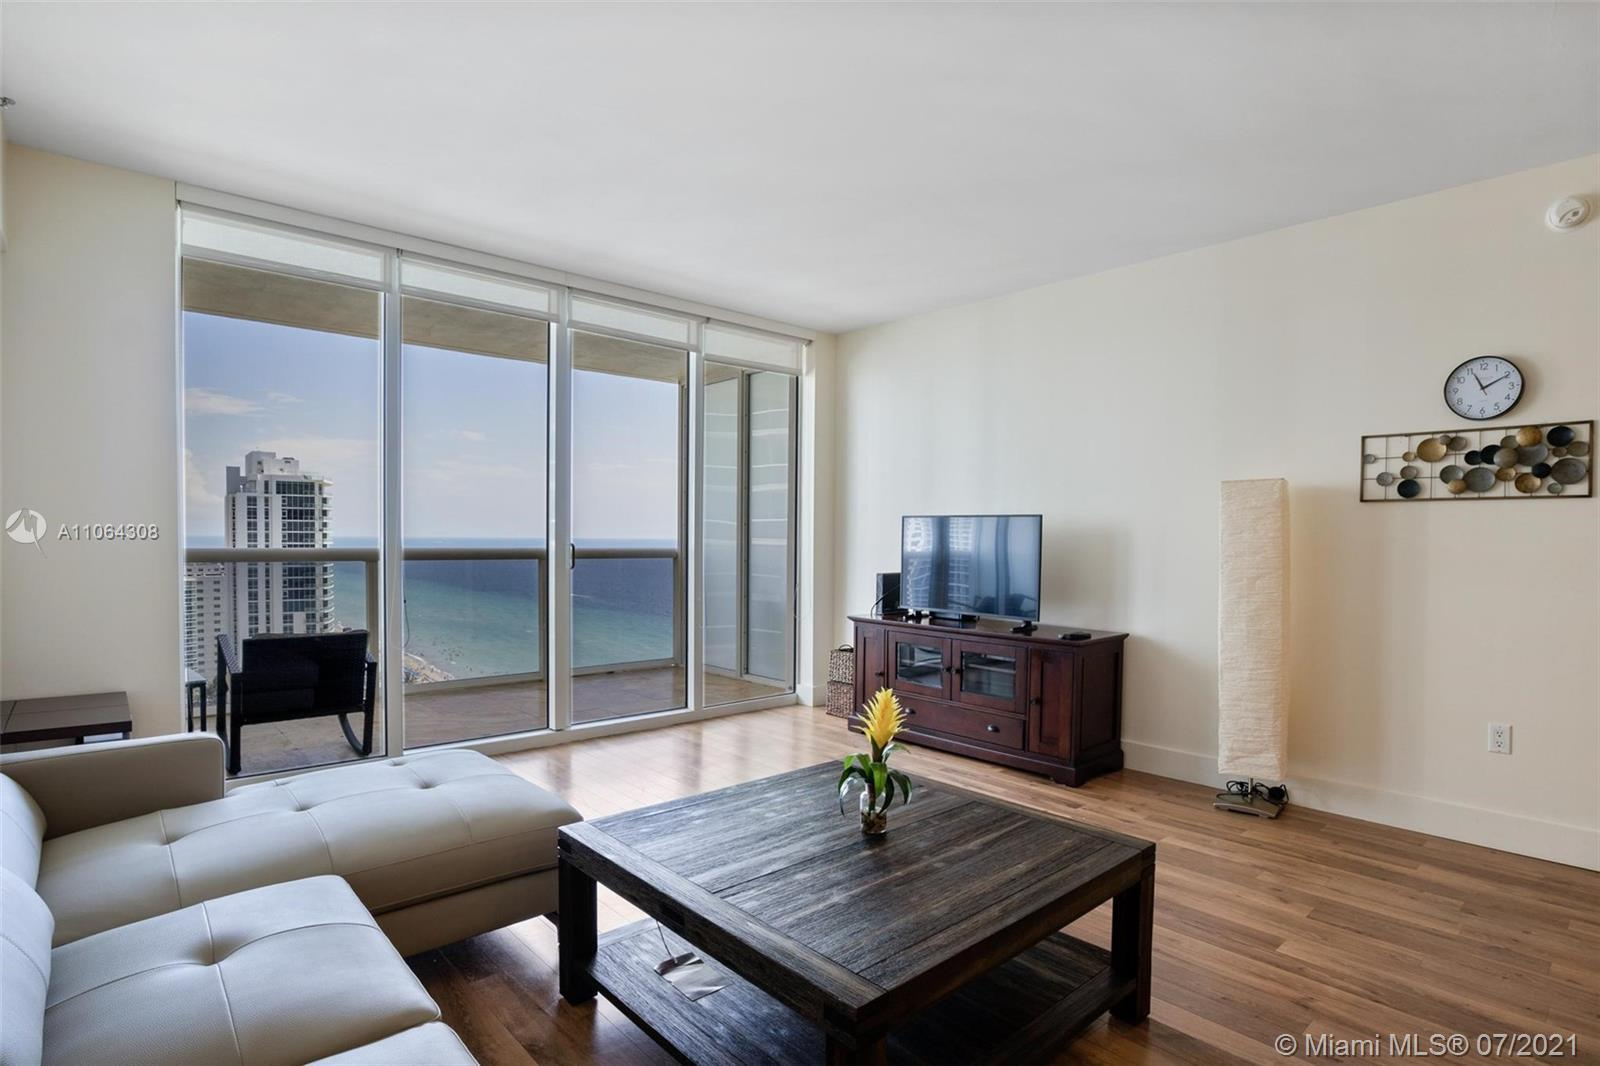 Breathtaking ocean views from this 22nd floor studio apartment. This exquisite unit offers a euro st